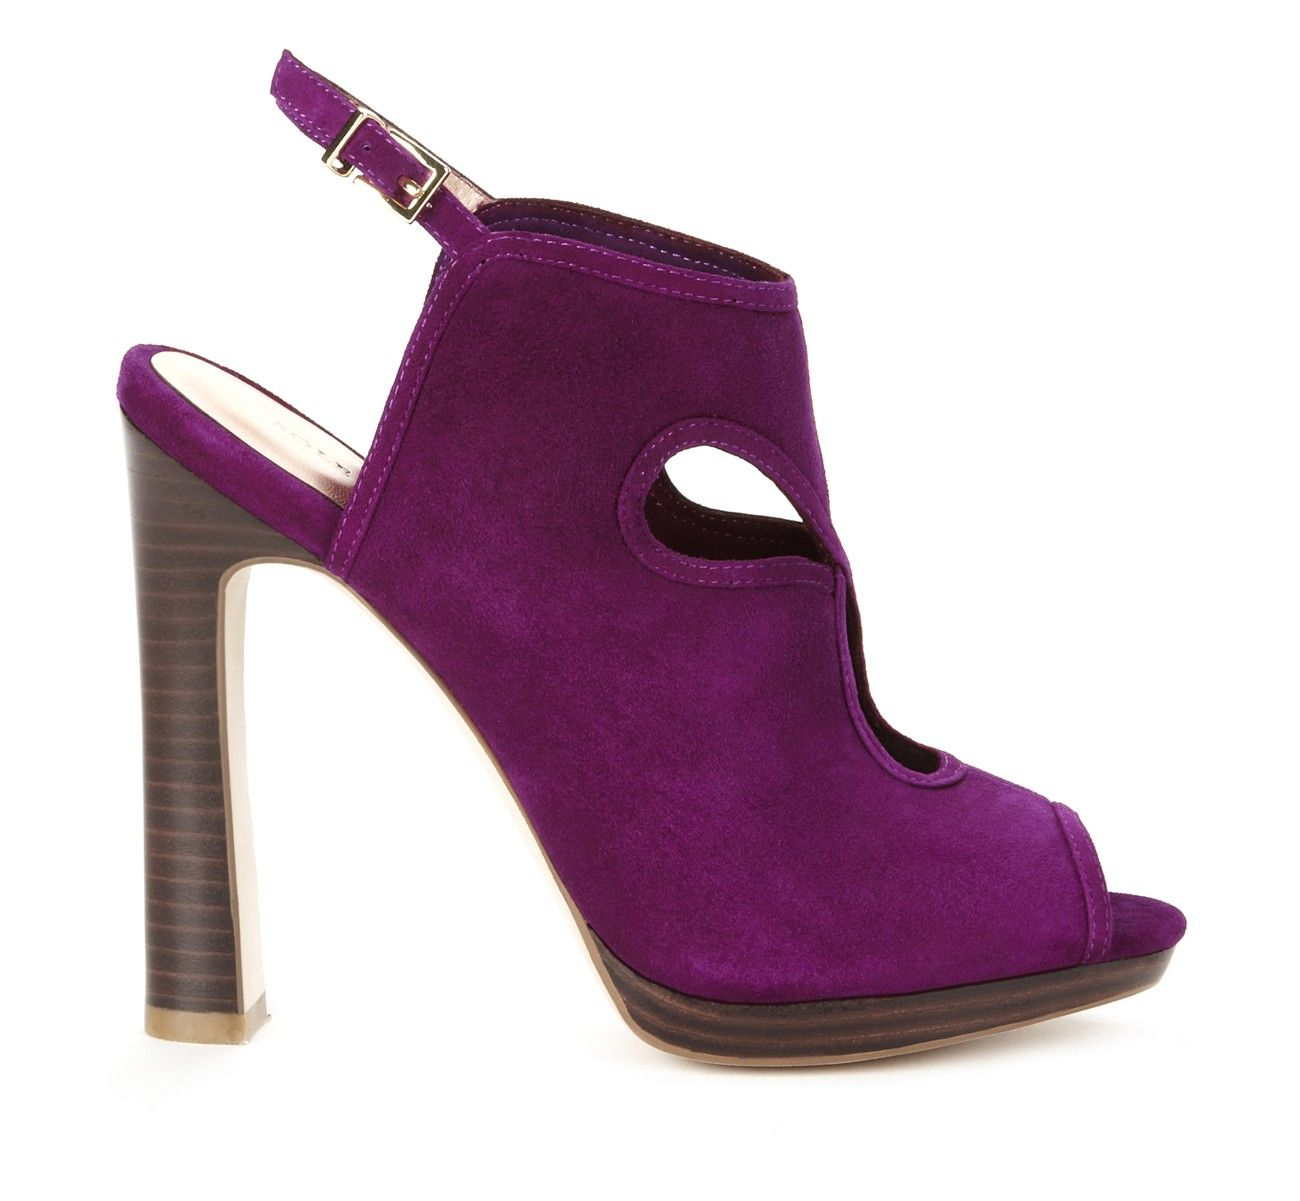 481093a73 If i were ever to wear heels like these... i am so in love with these. violet  suede peep toe ...